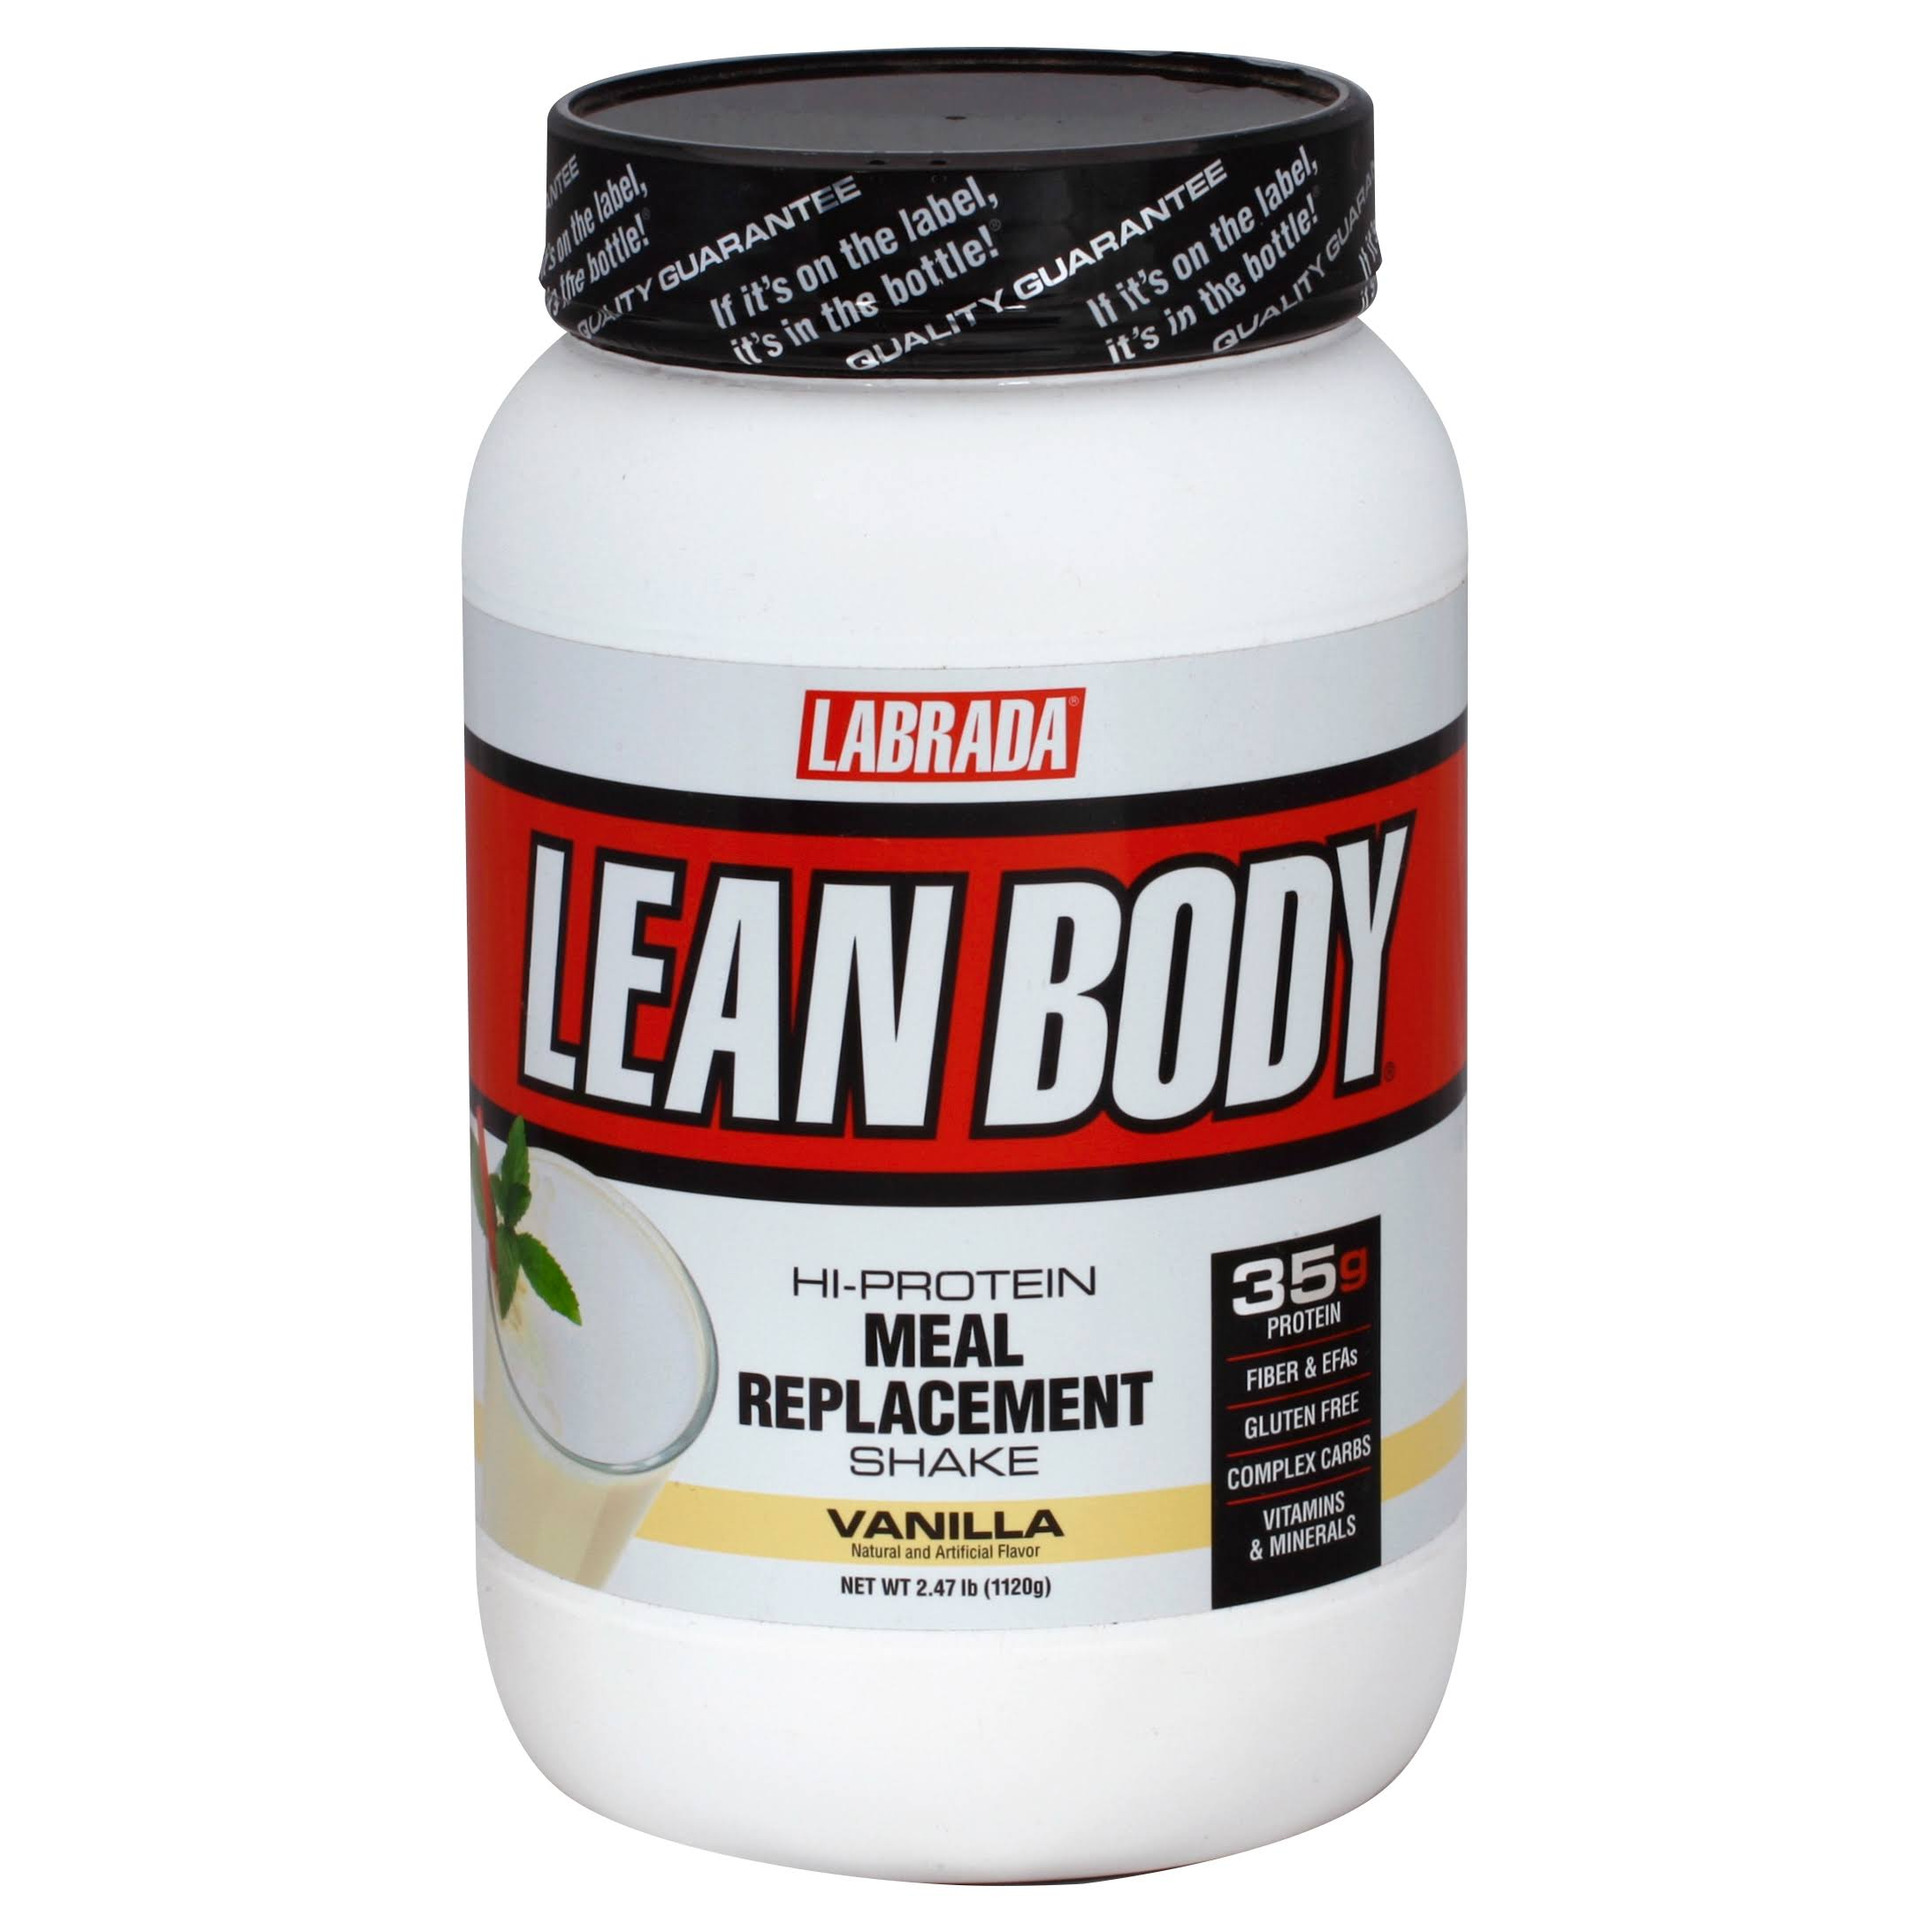 Labrada Nutrition Lean Body Hi-Protein Meal Replacement Shake - Vanilla, 2.47 lbs